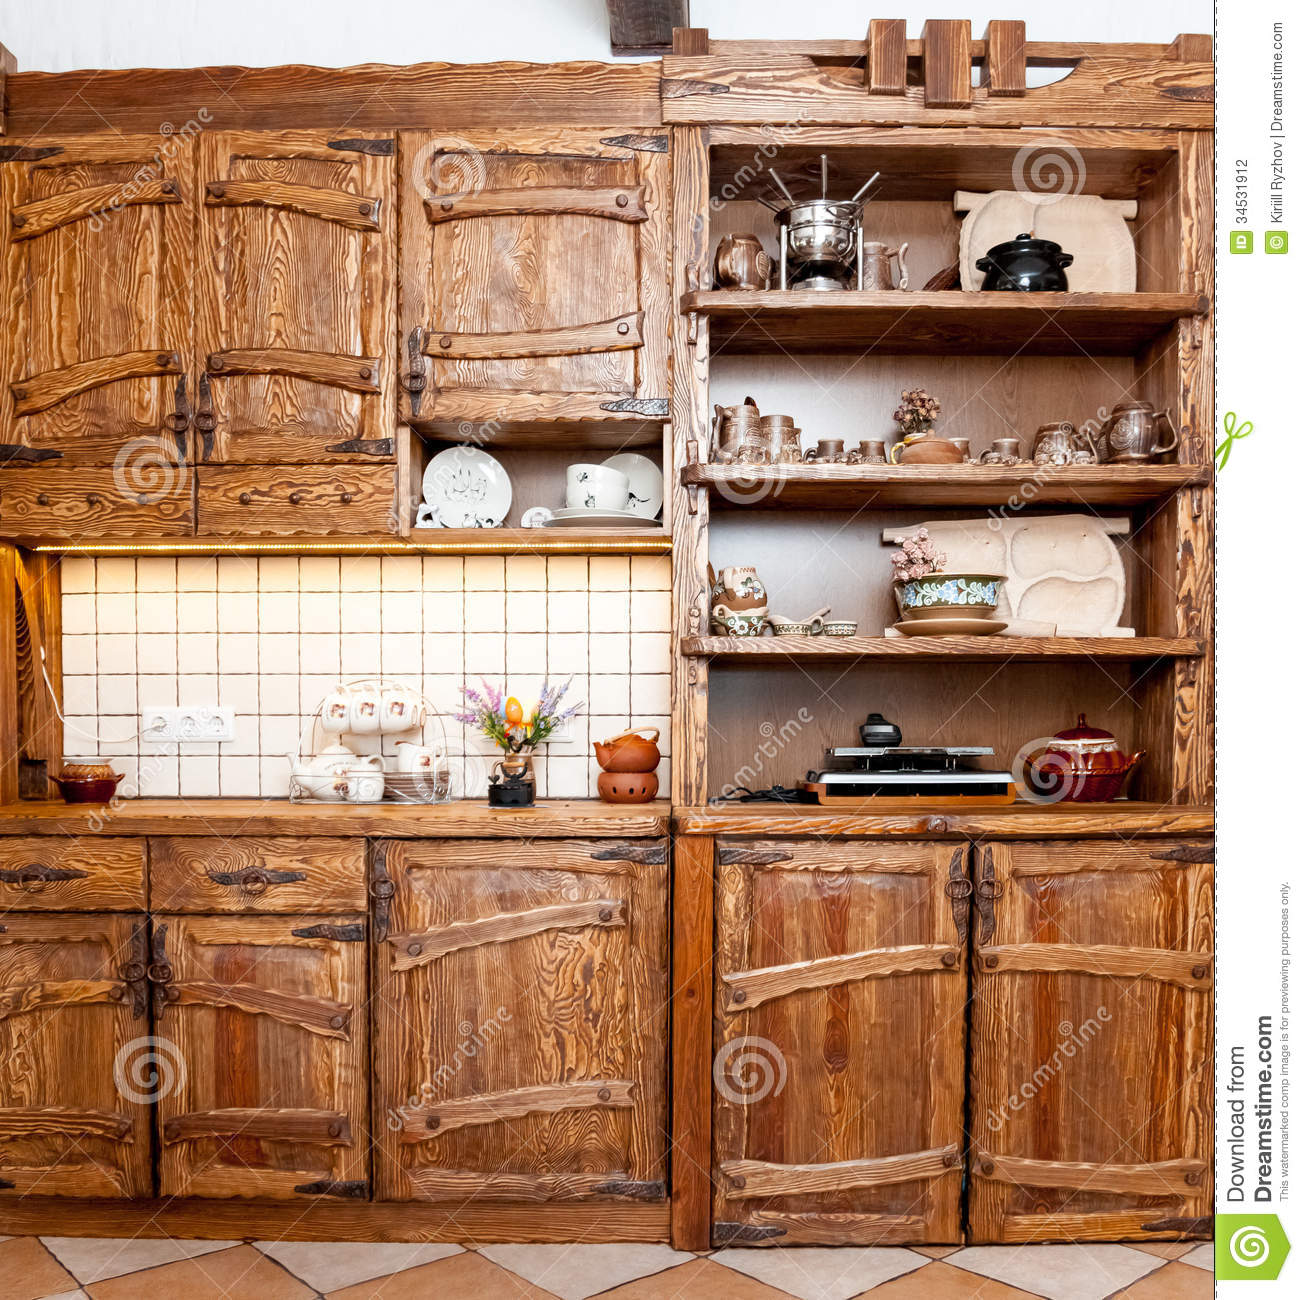 furniture kitchen country style wooden kitchen furniture kitchen furniture furniture